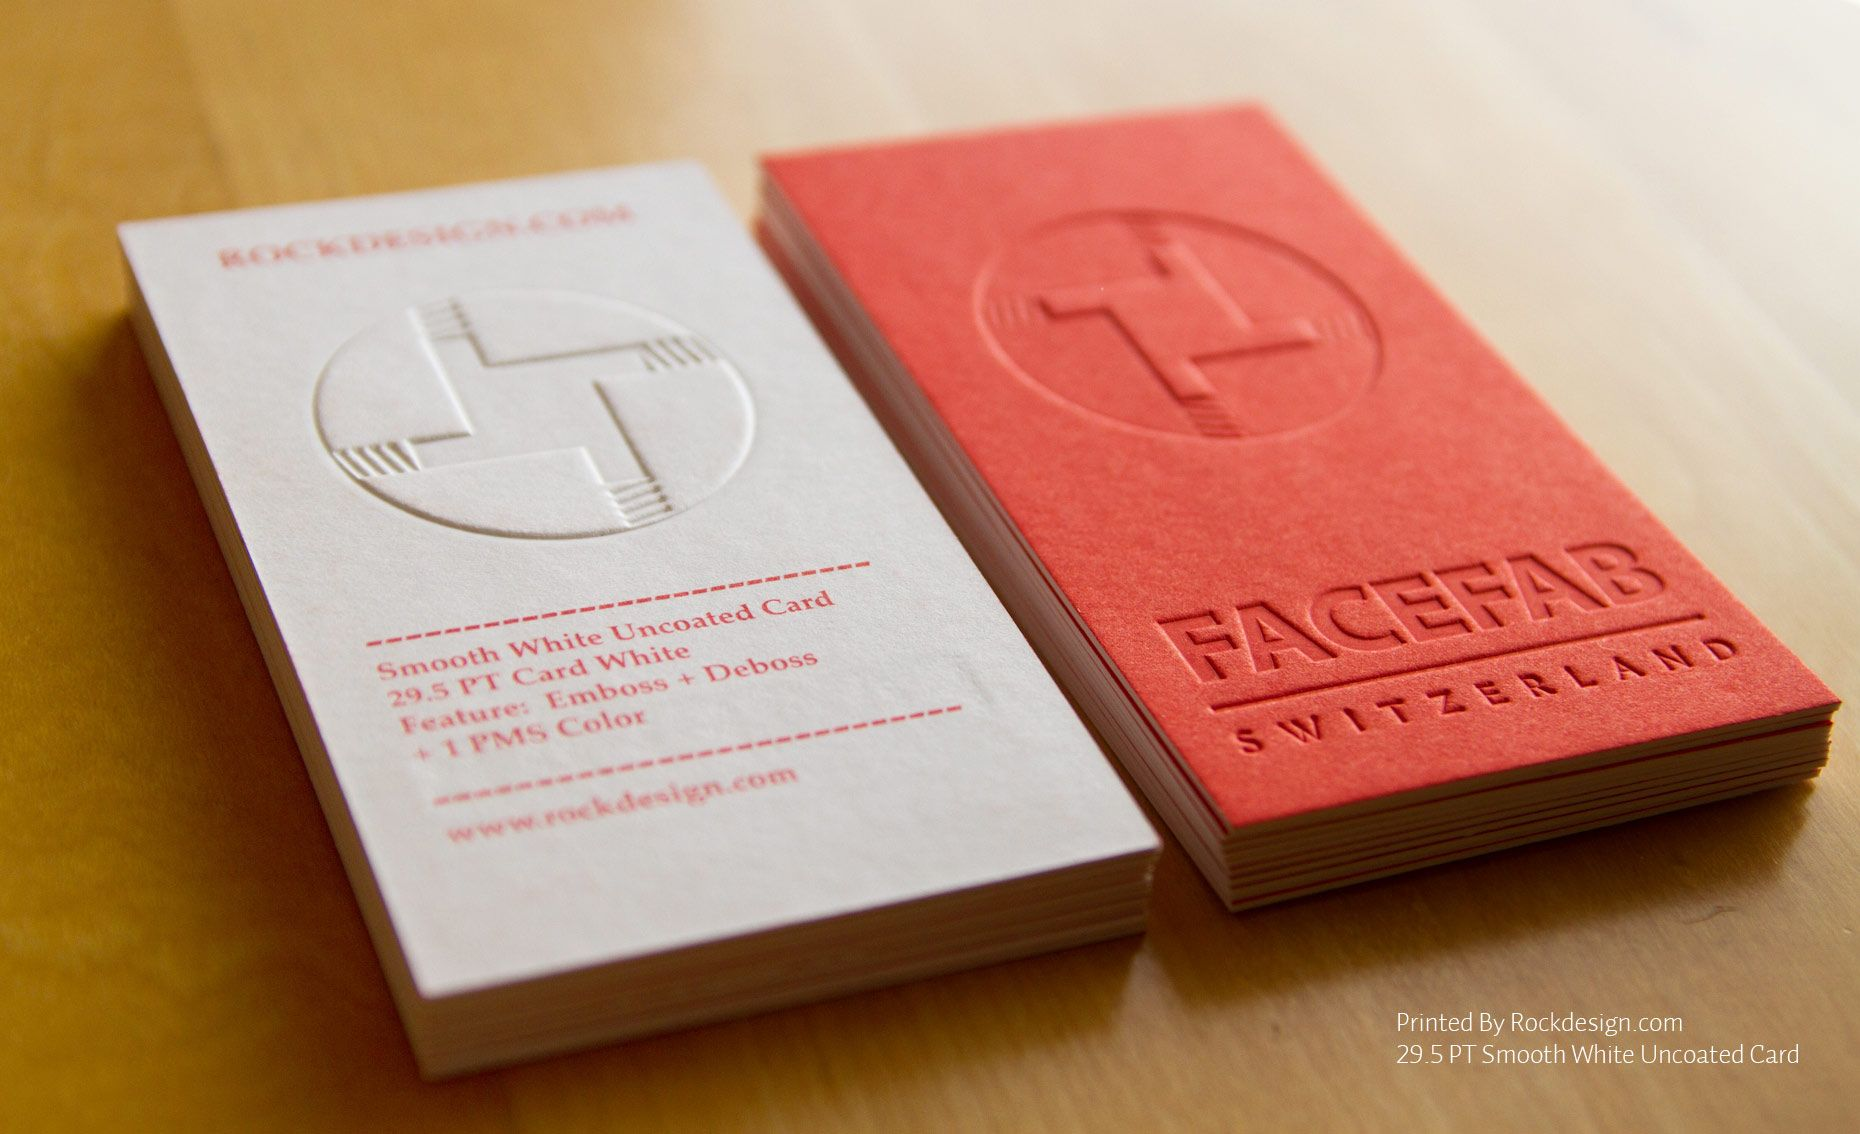 Rockdesign high end business cards smooth white uncoated facefab switzerland emboss business card design examples of creative business card ideas reheart Choice Image